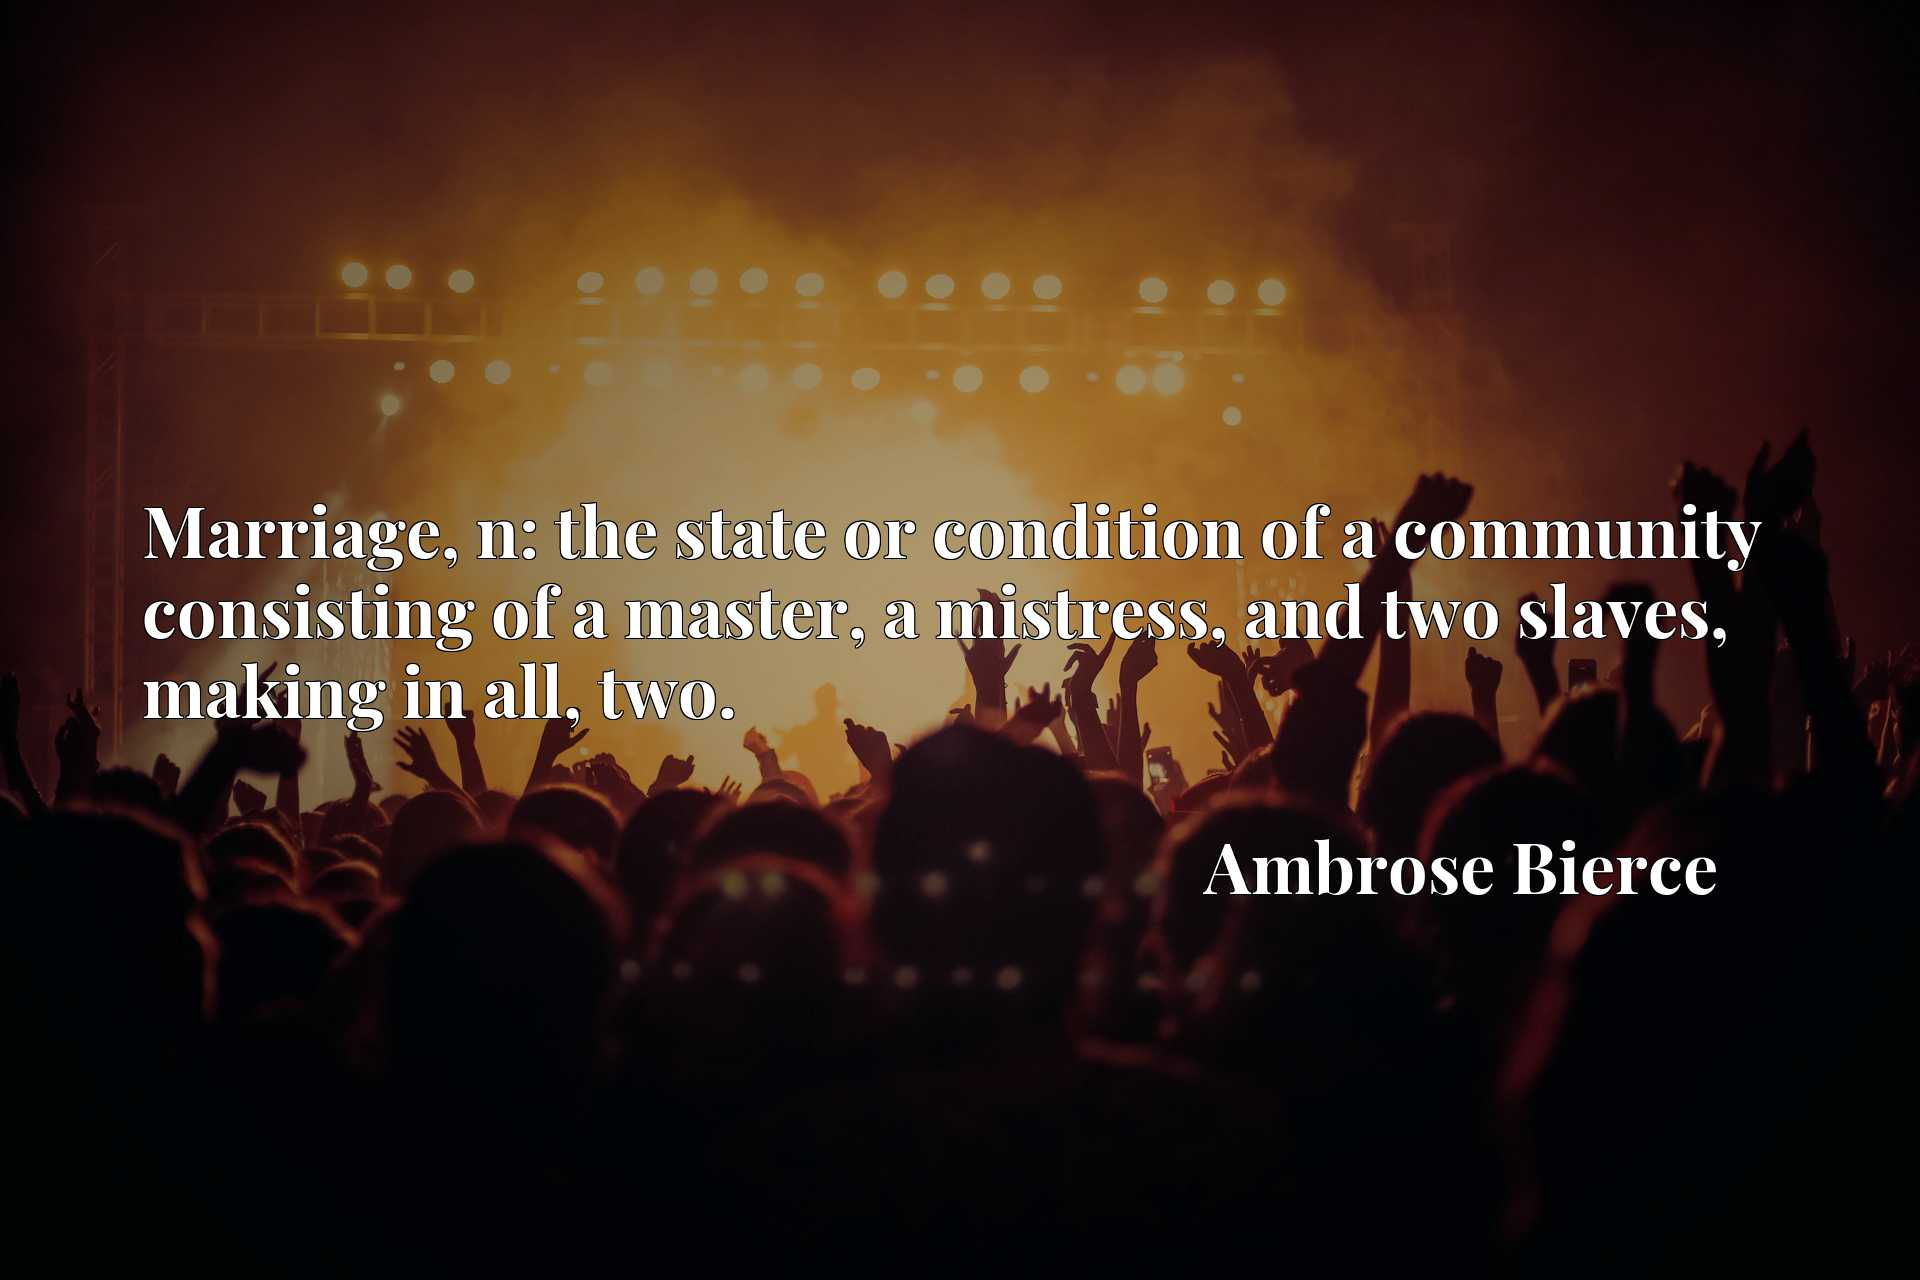 Quote Picture :Marriage, n: the state or condition of a community consisting of a master, a mistress, and two slaves, making in all, two.